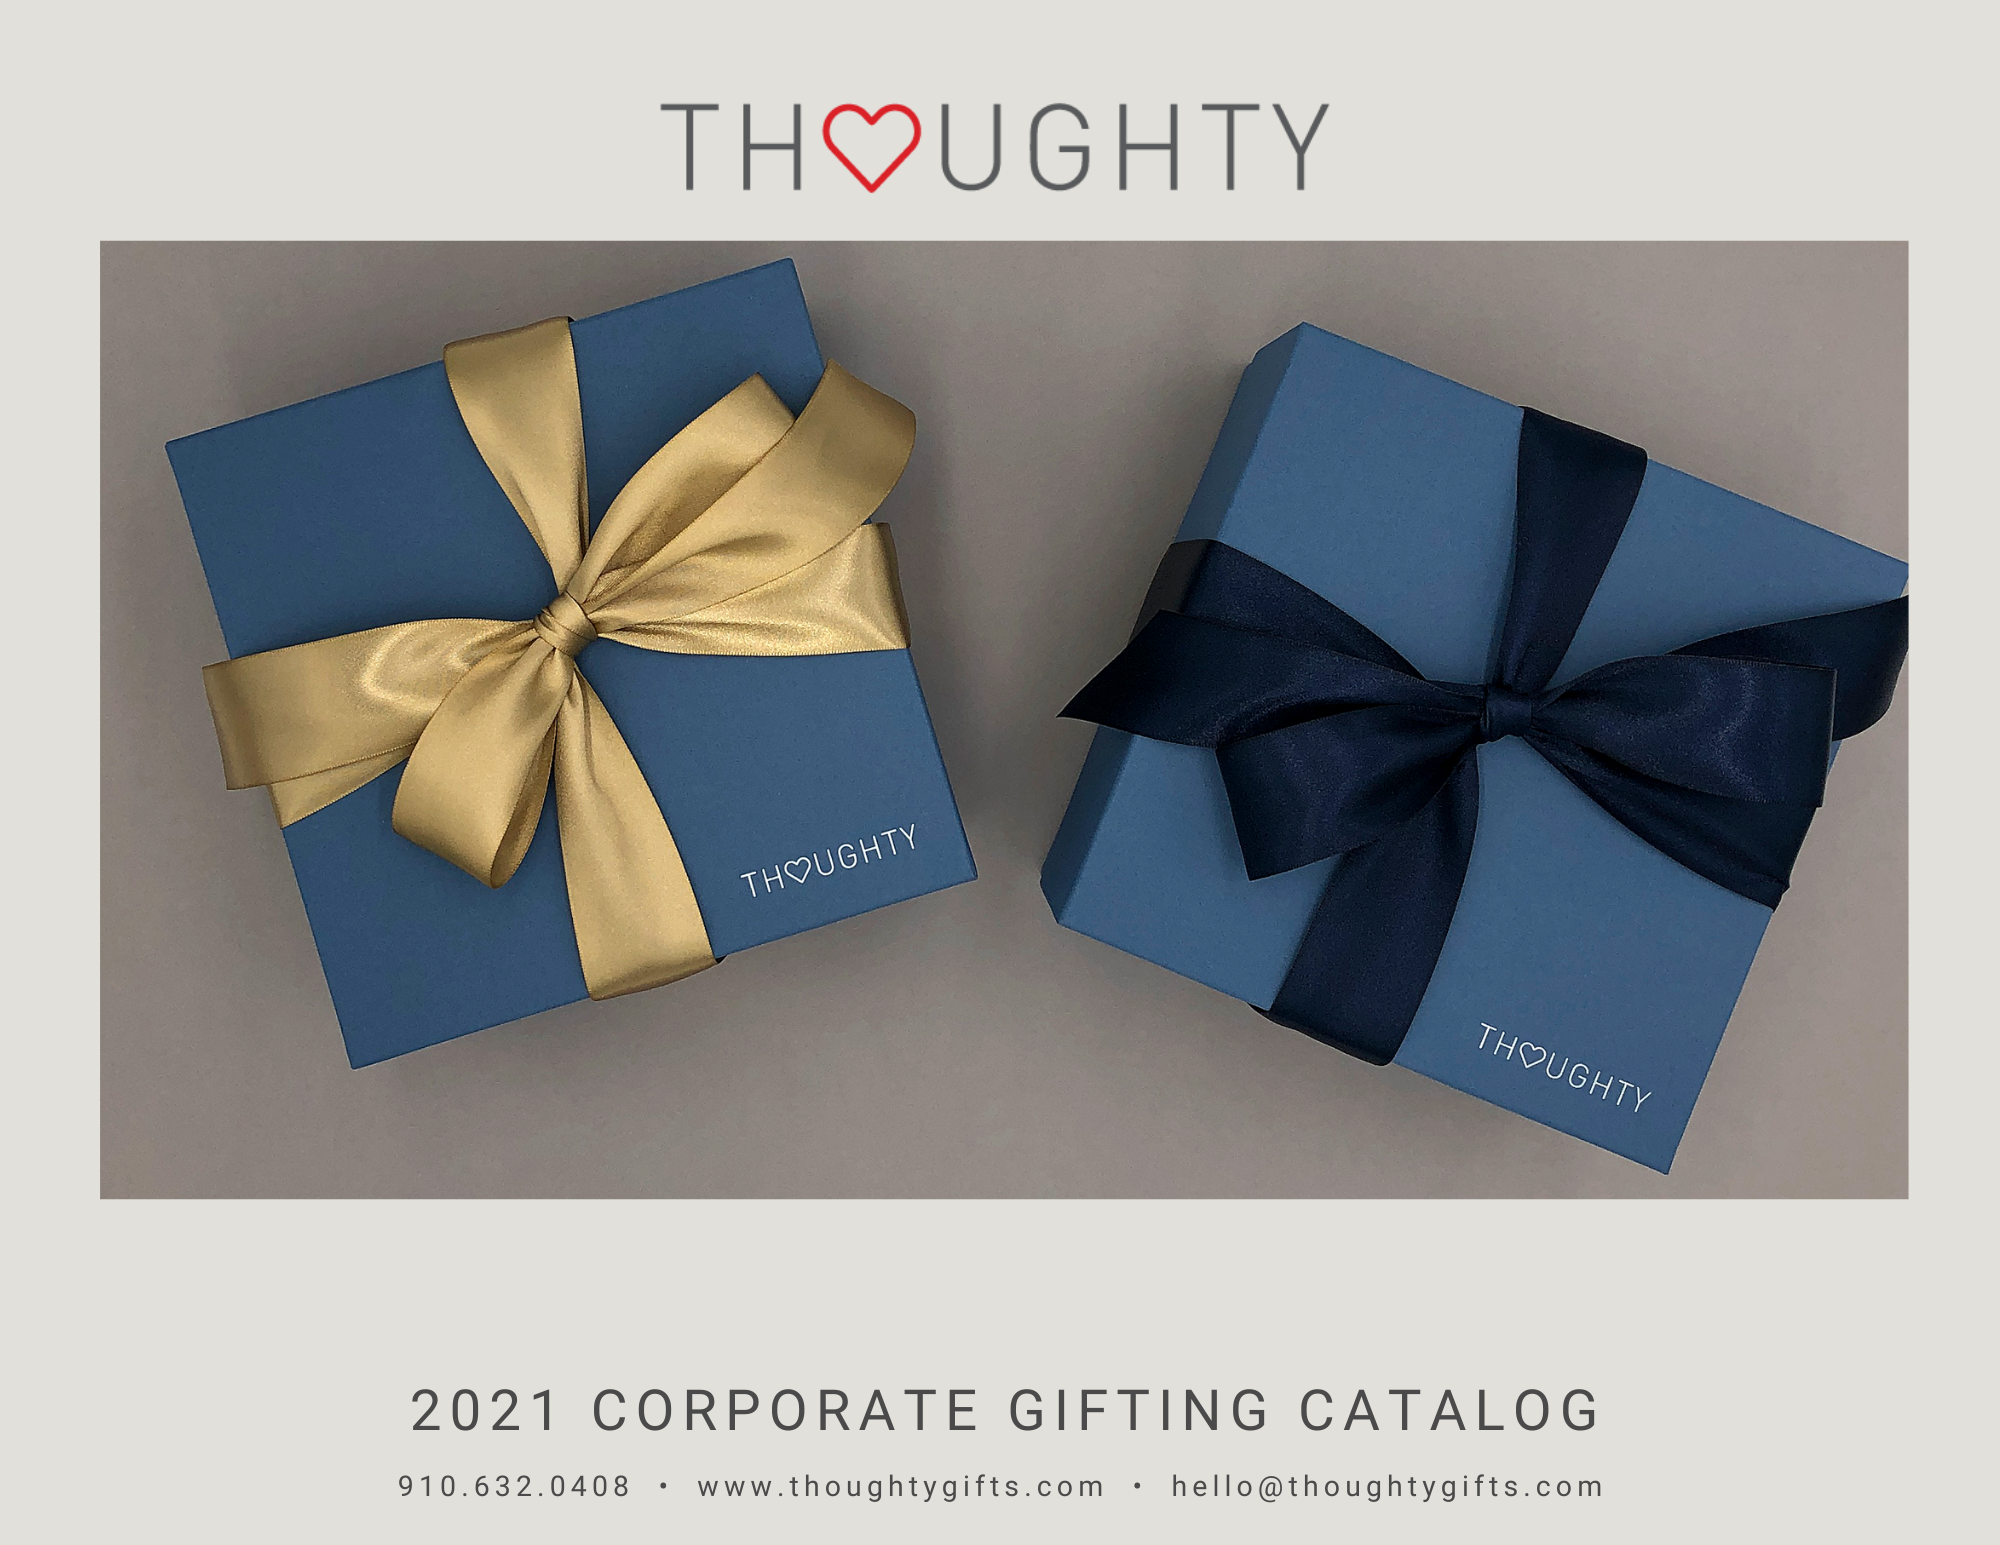 Corporate Catalog for client gifts, corporate gifts, event gifts, custom gifts, business gifts, employee gifts, closing gifts